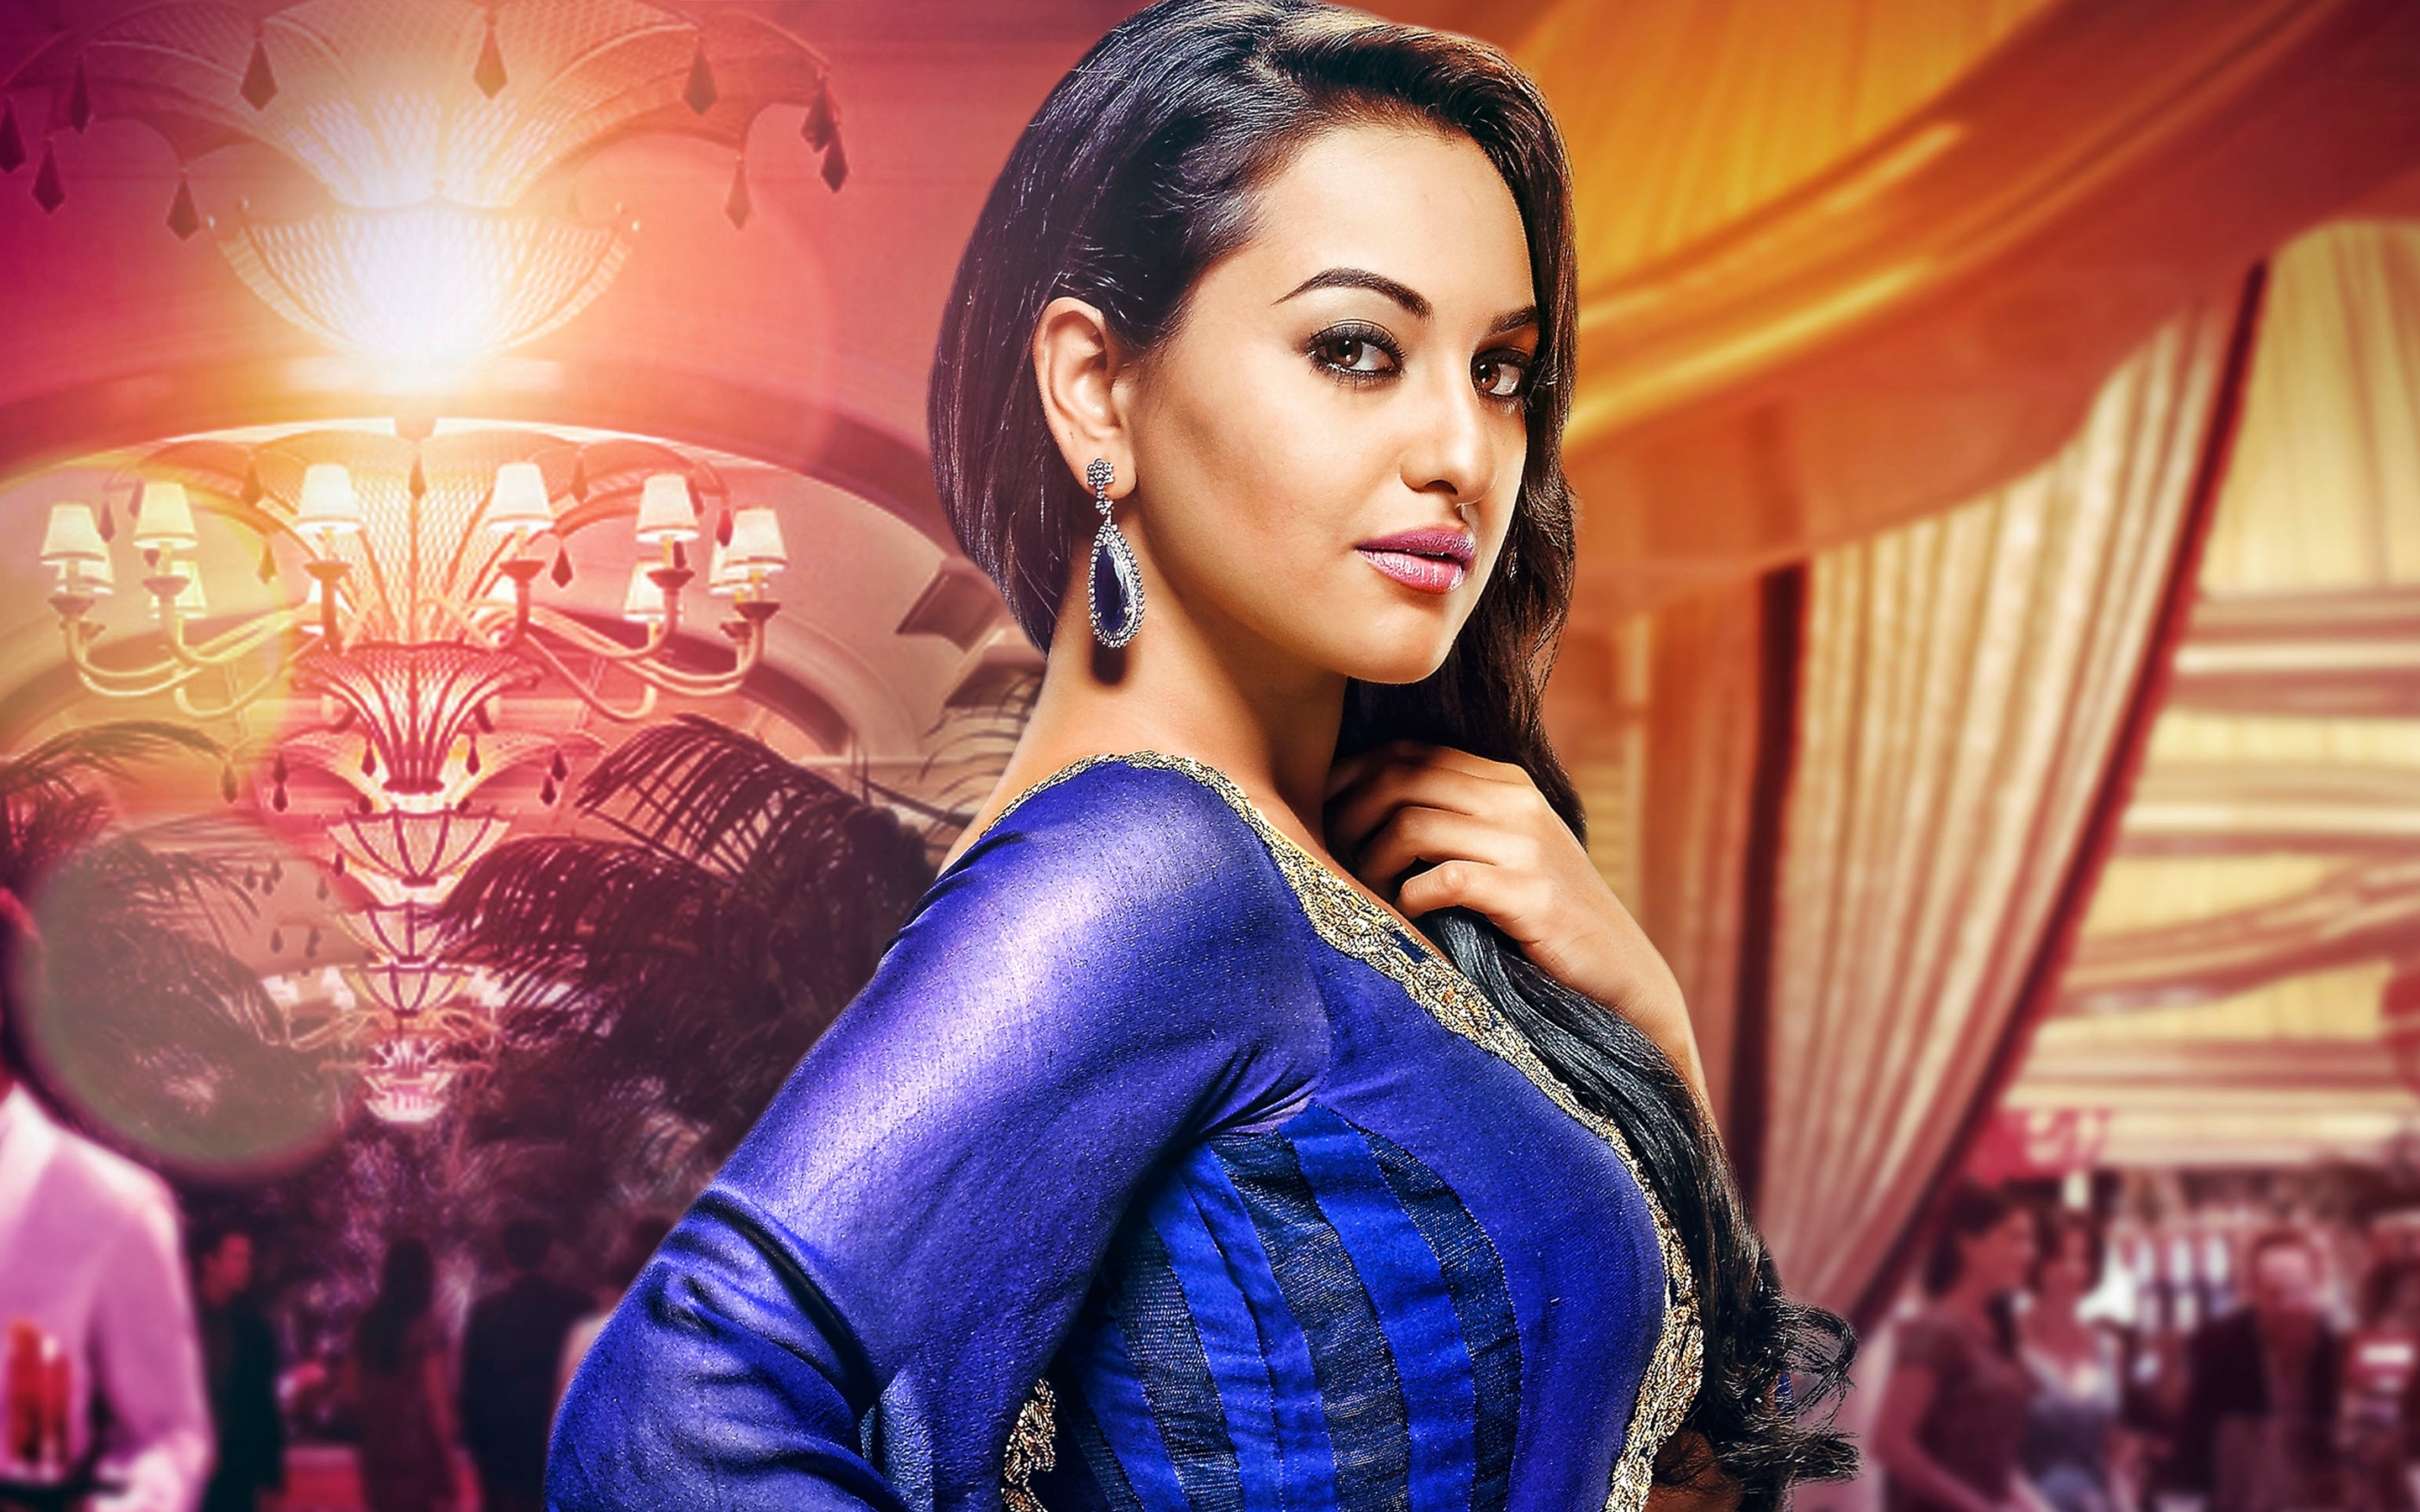 sonakshi sinha full hd wallpaper and background image | 2880x1800